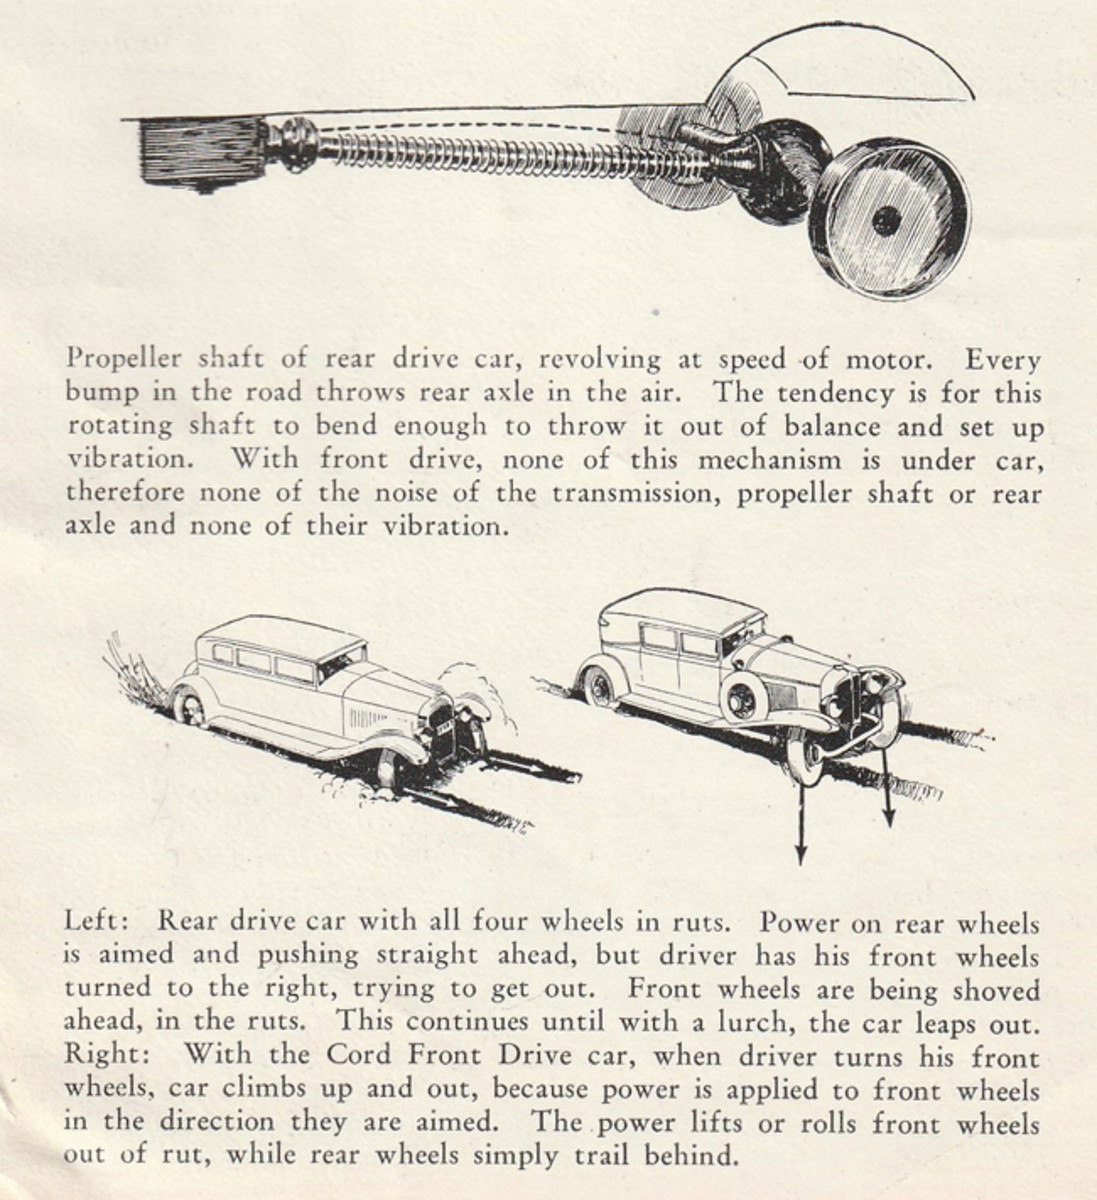 The lack of a long, spinning drive shaft (top) meant a smoother ride in a Cord. Better performance getting out of a rut (bottom) was also an advantage of front-wheel drive.